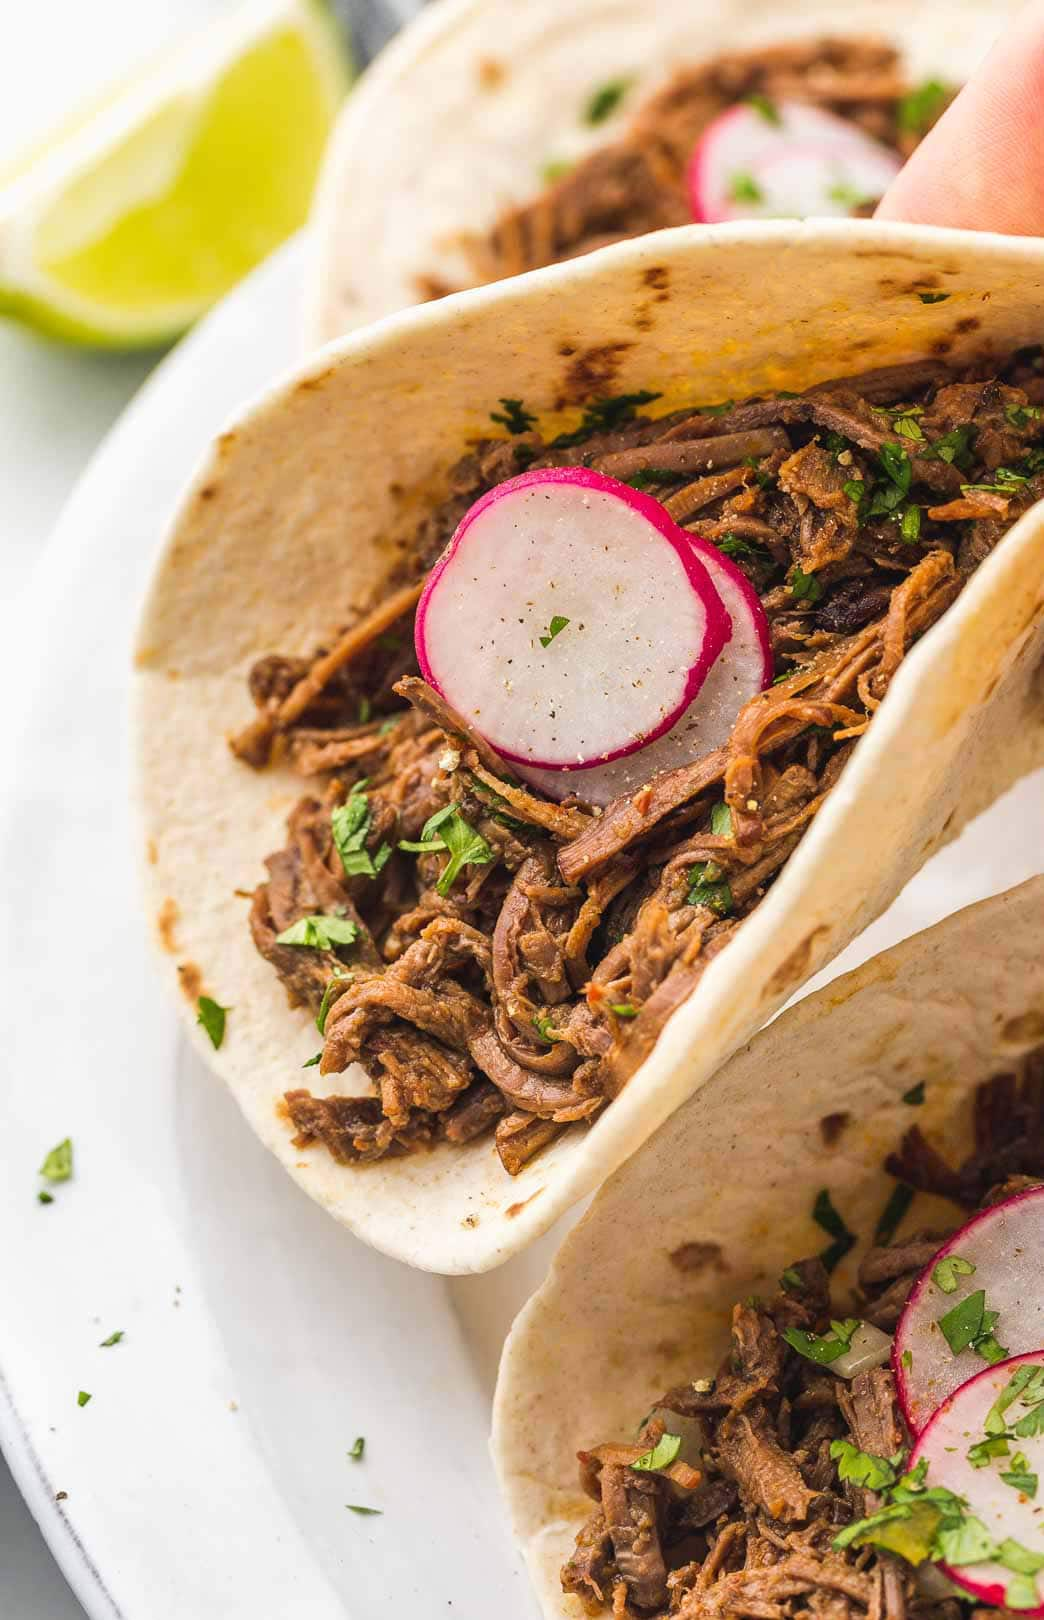 Barbacoa beef in a taco, garnished with cilantro and radishes